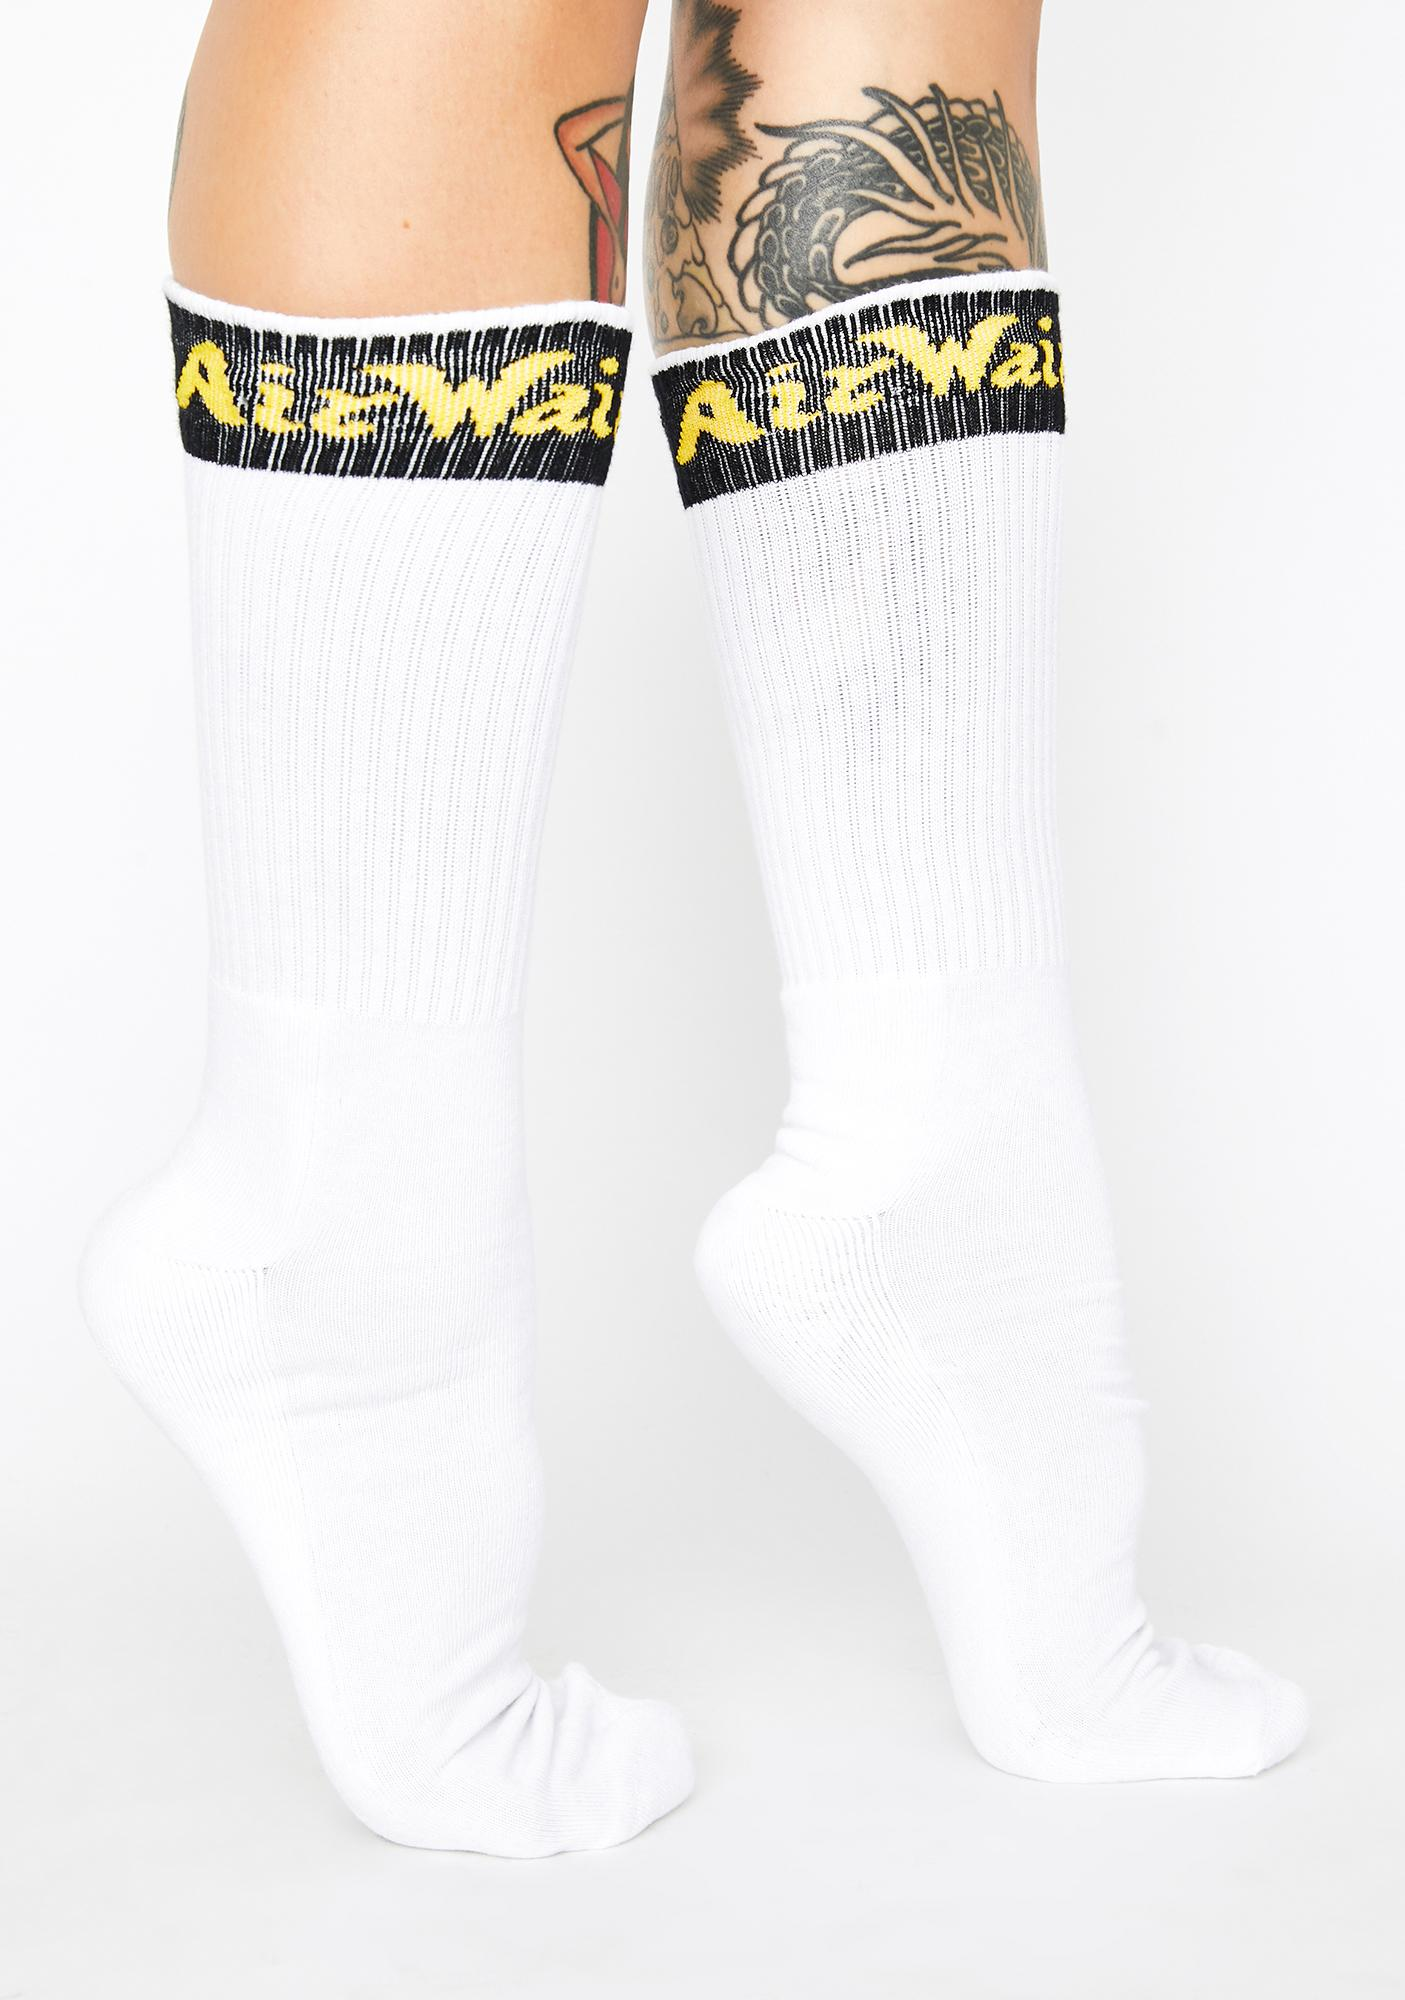 Dr. Martens Athletic DNA Socks